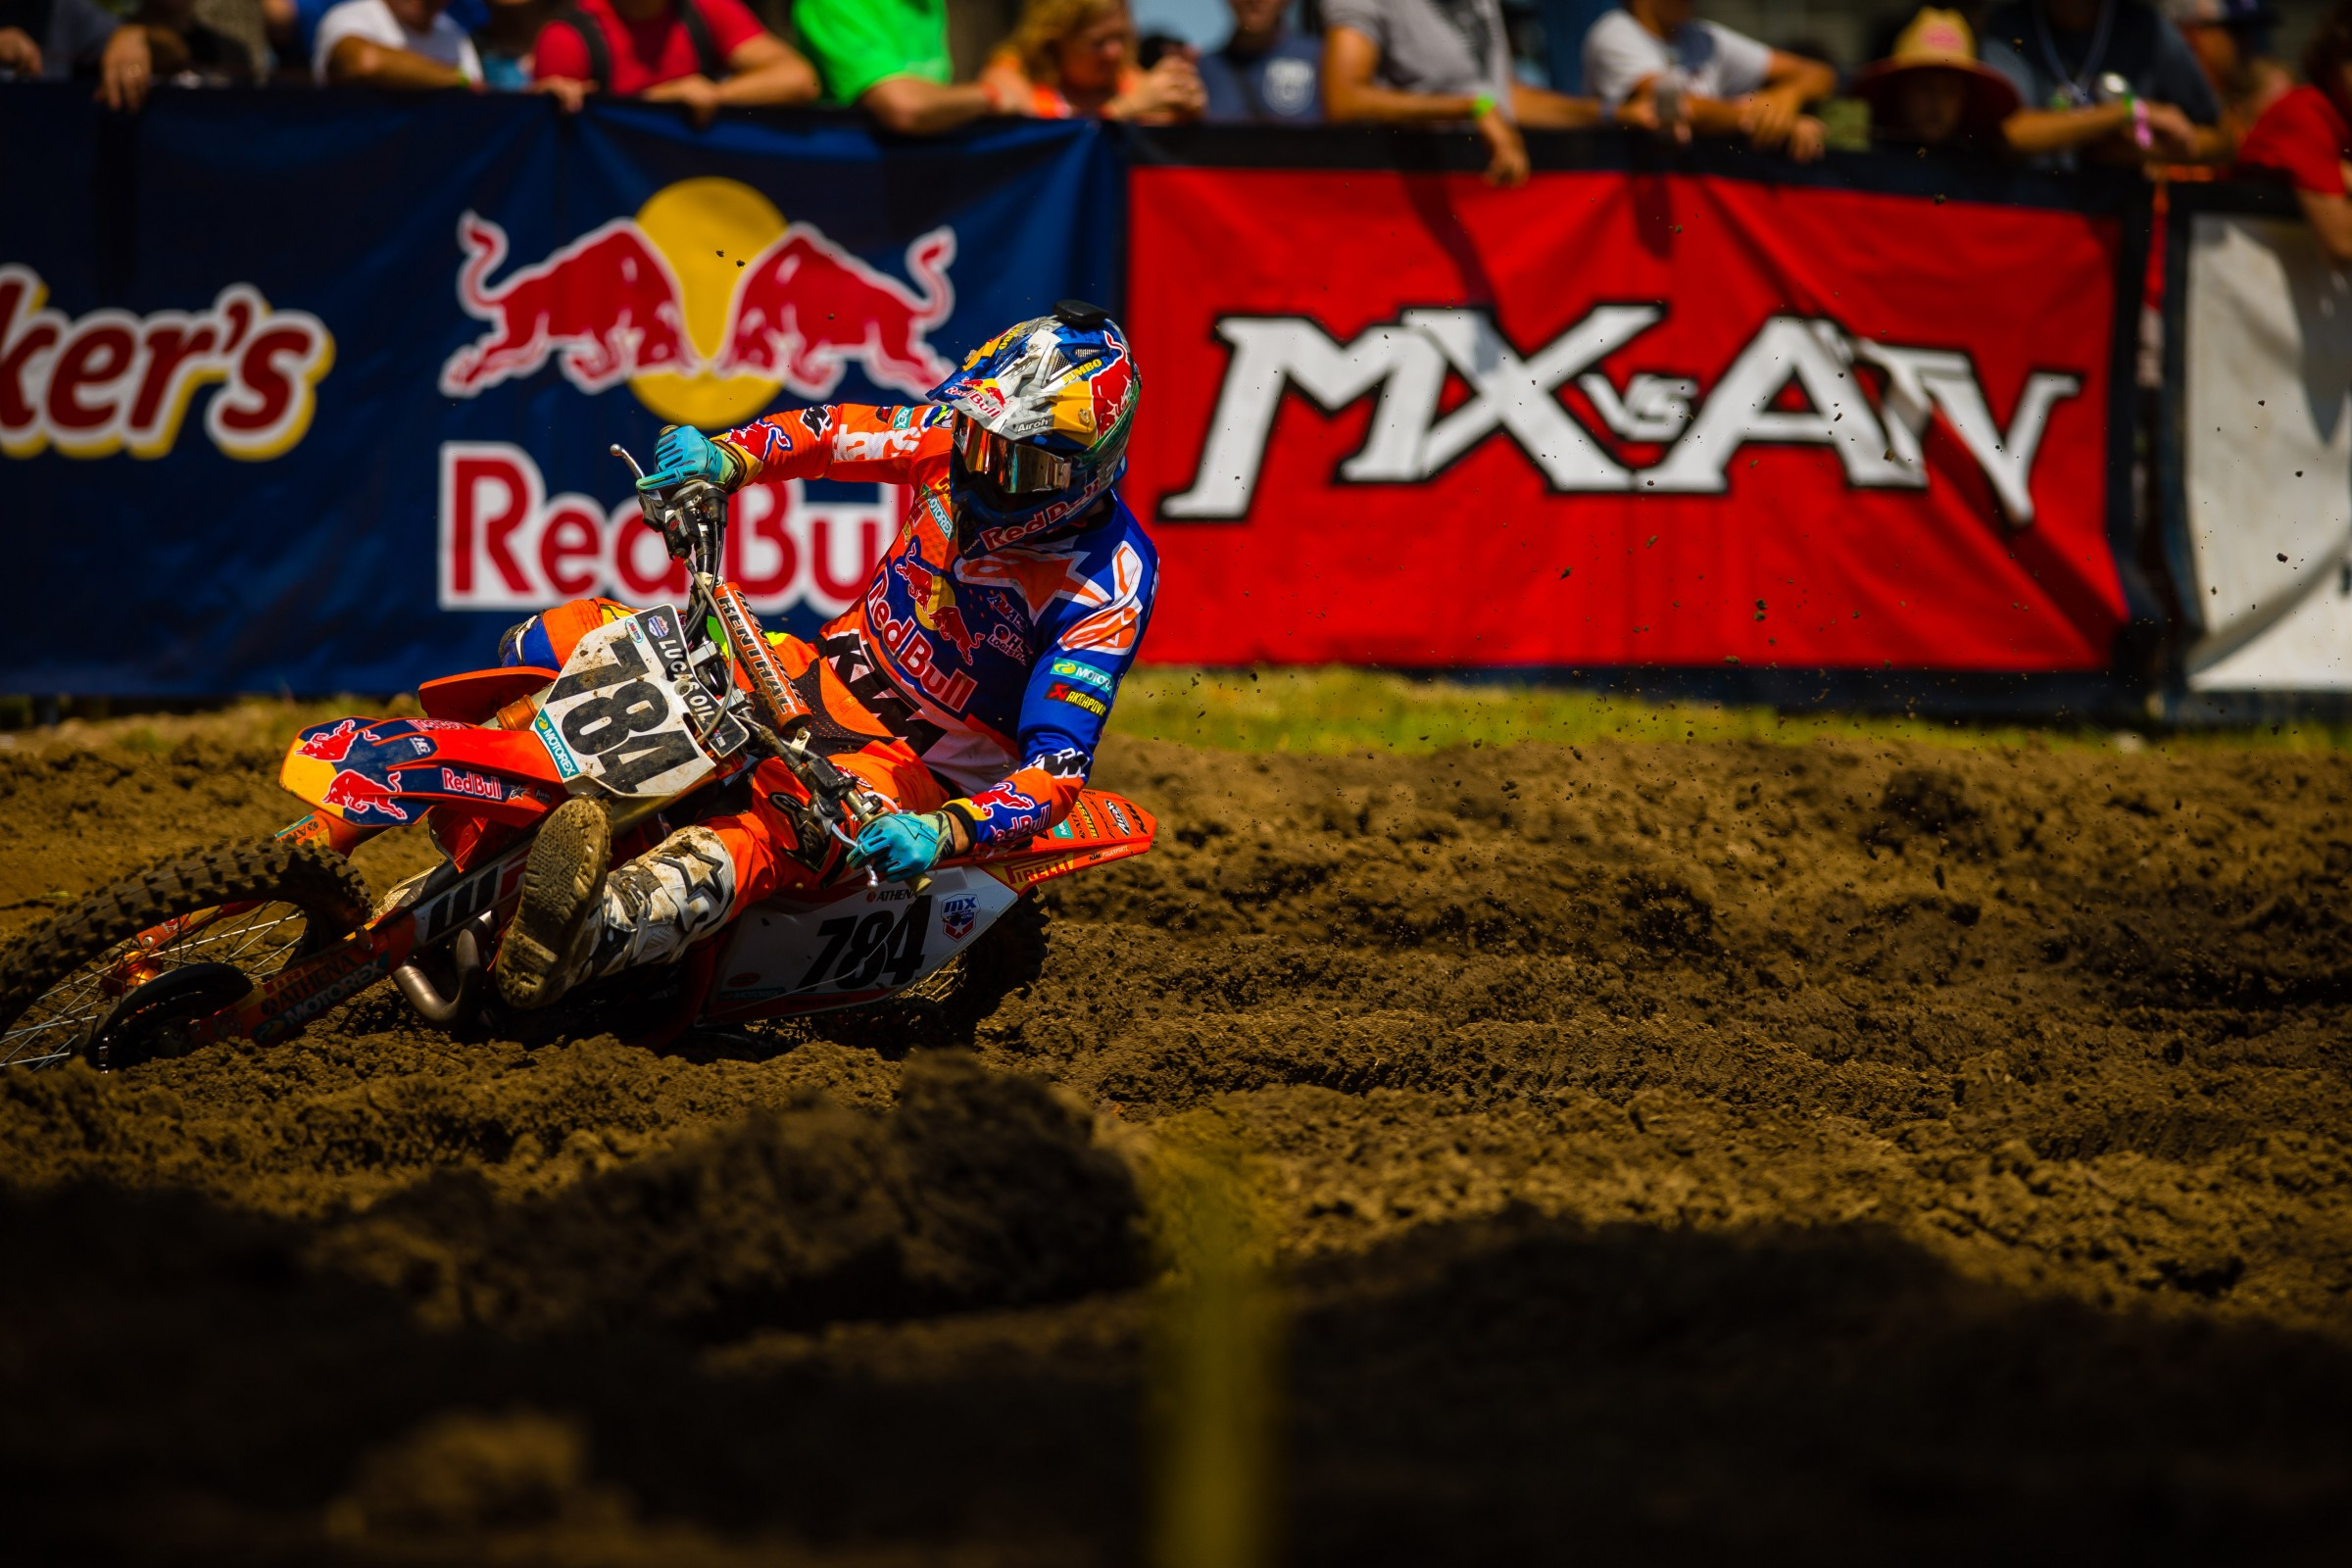 Herlings was noticeably quicker than the rest of the 450 Class in the rutted up corners at Ironman.